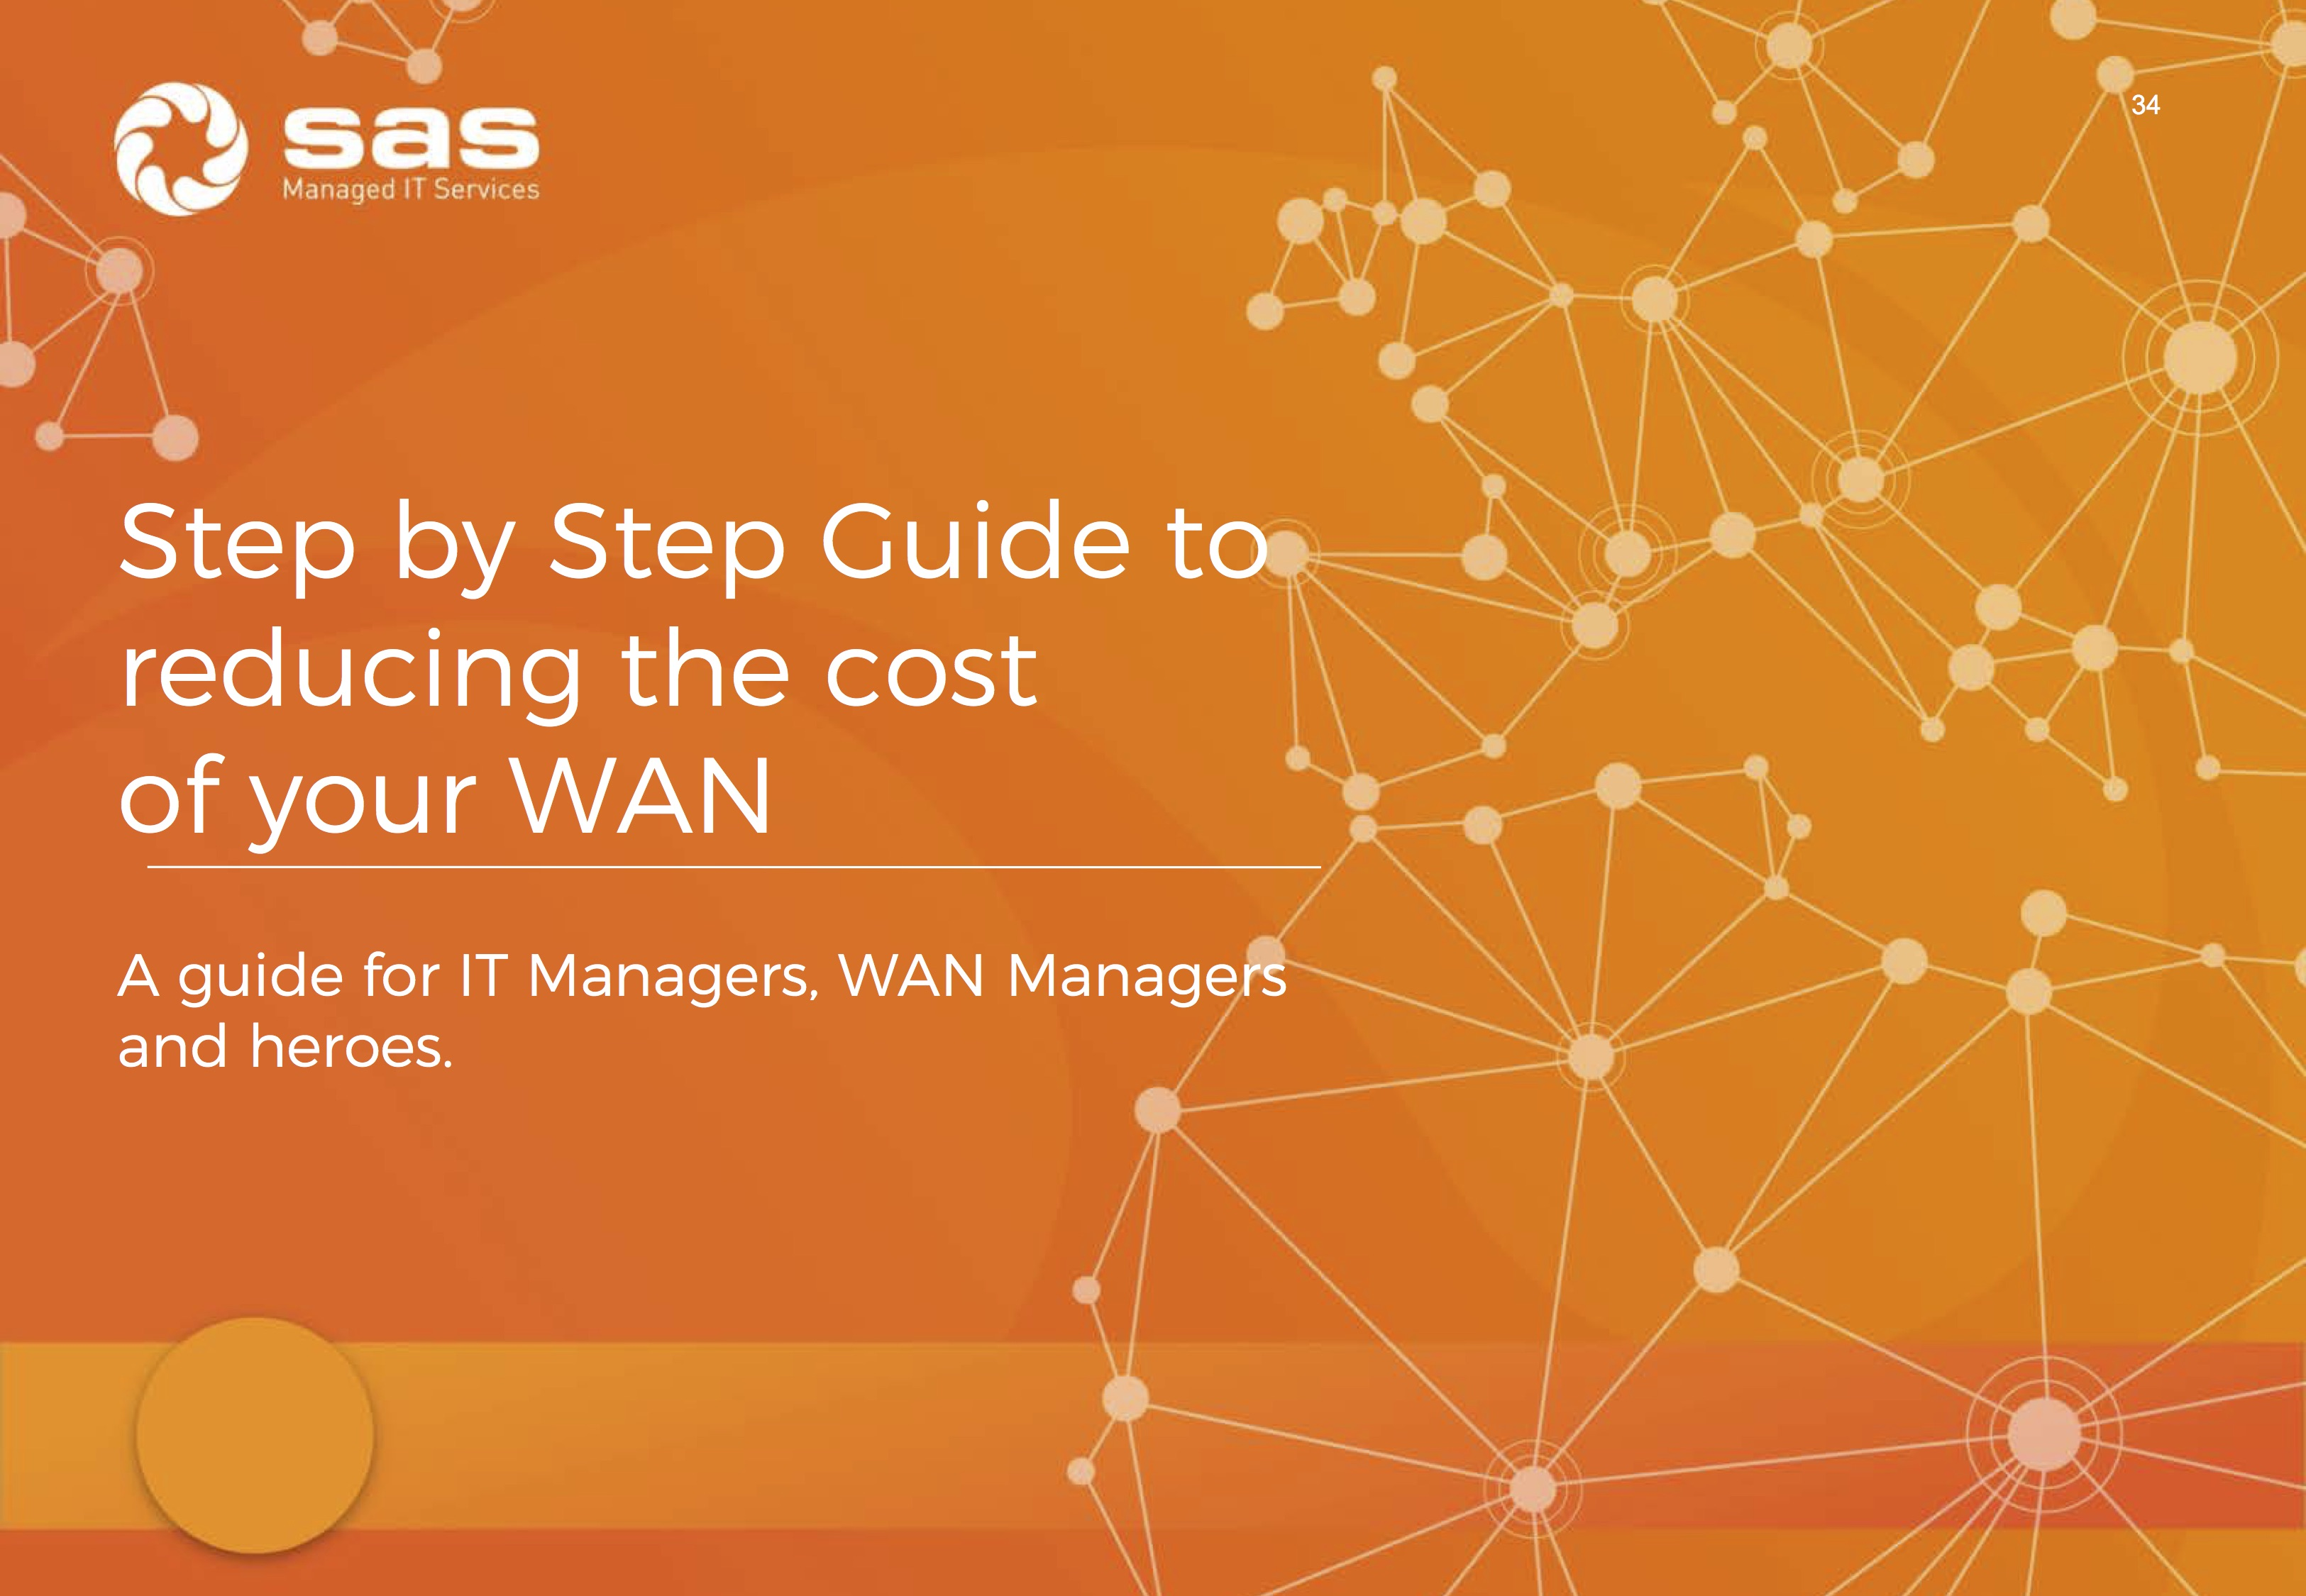 Step-by-step-guide-to-reducing-the-cost-of-your-WAN